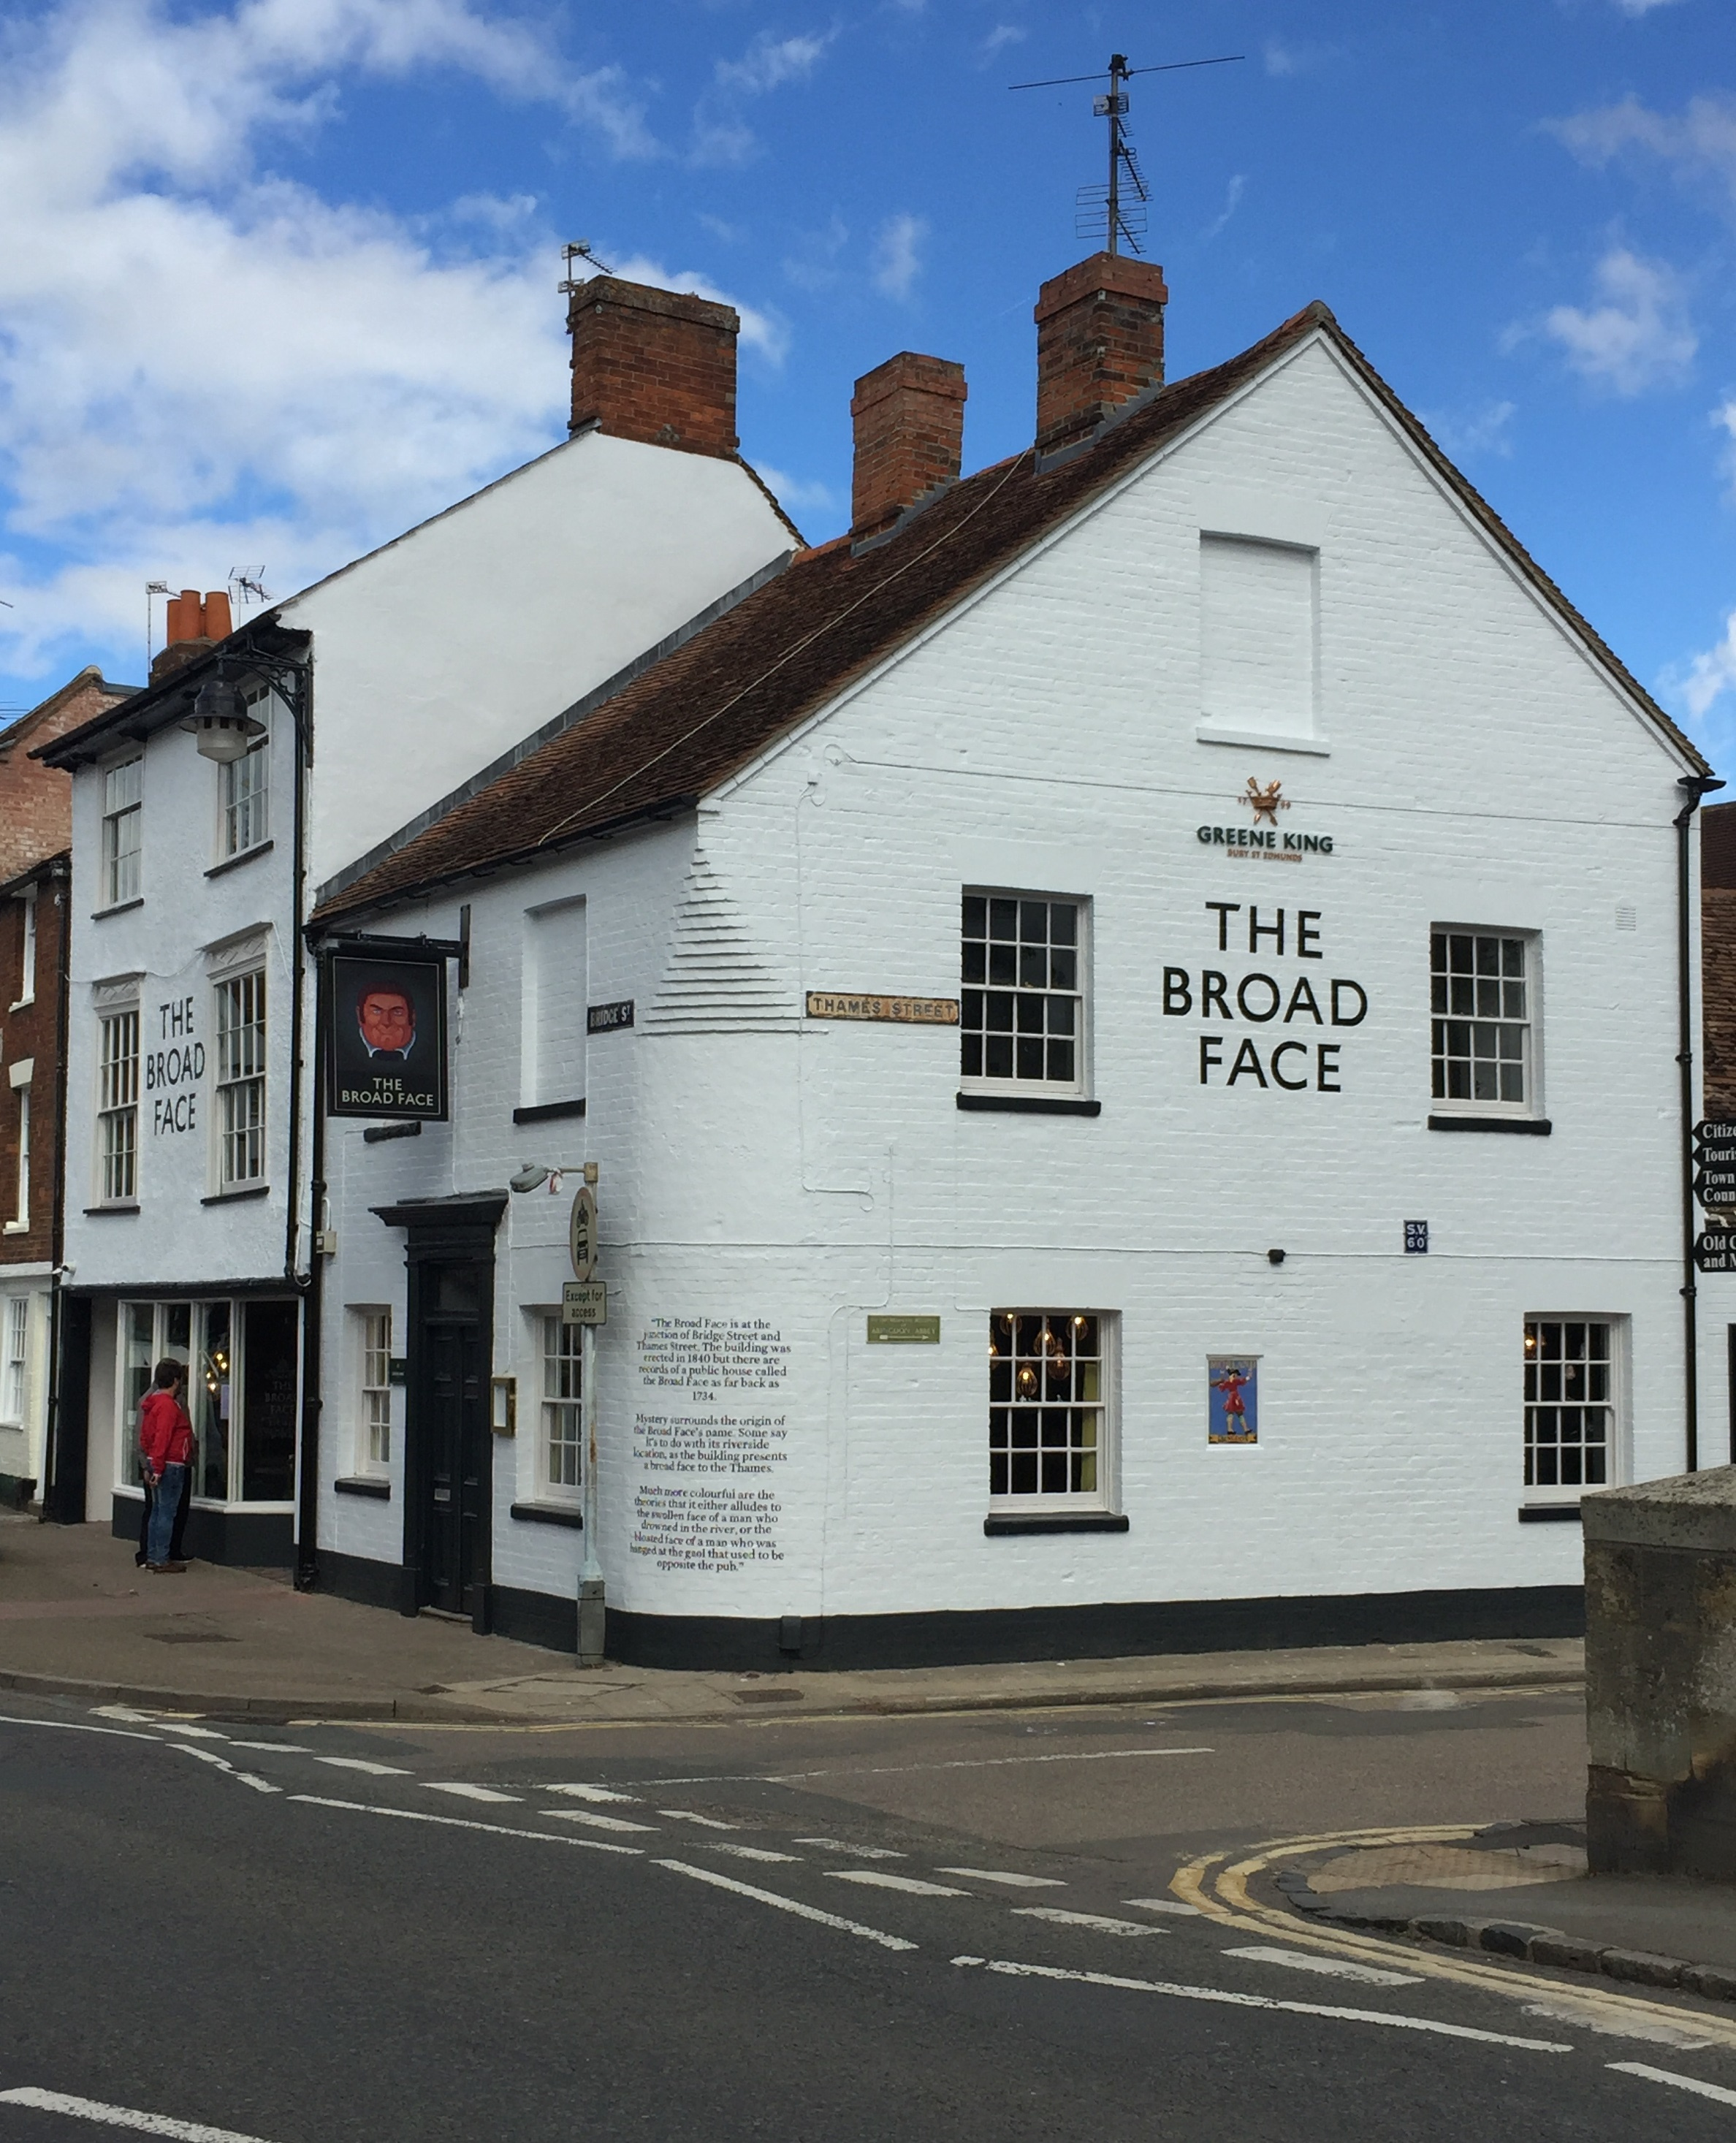 The Broad Face pub in Abingdon opened to the public on Sunday after weeks of refurbishment under new licensee, Joshua Khan